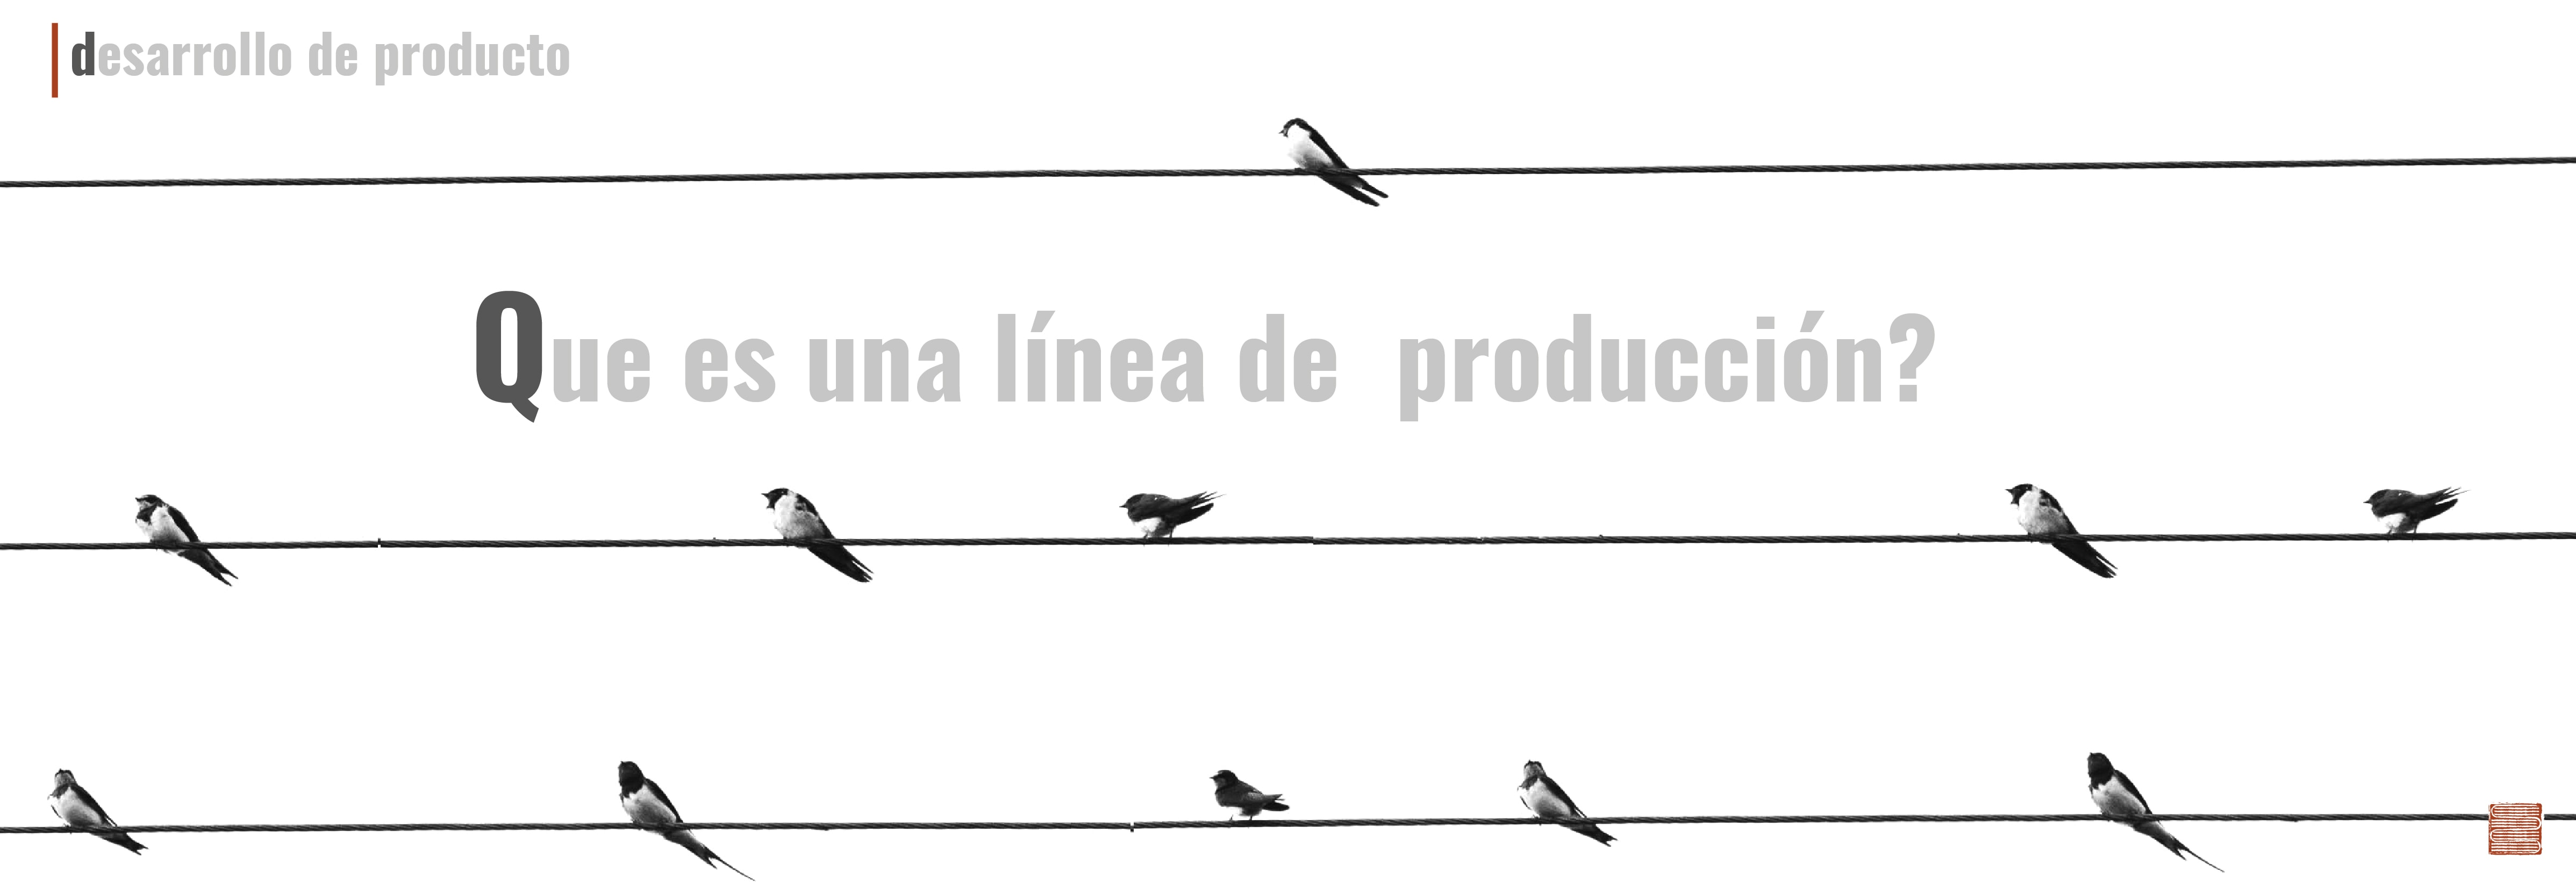 Que es una línea de producción?